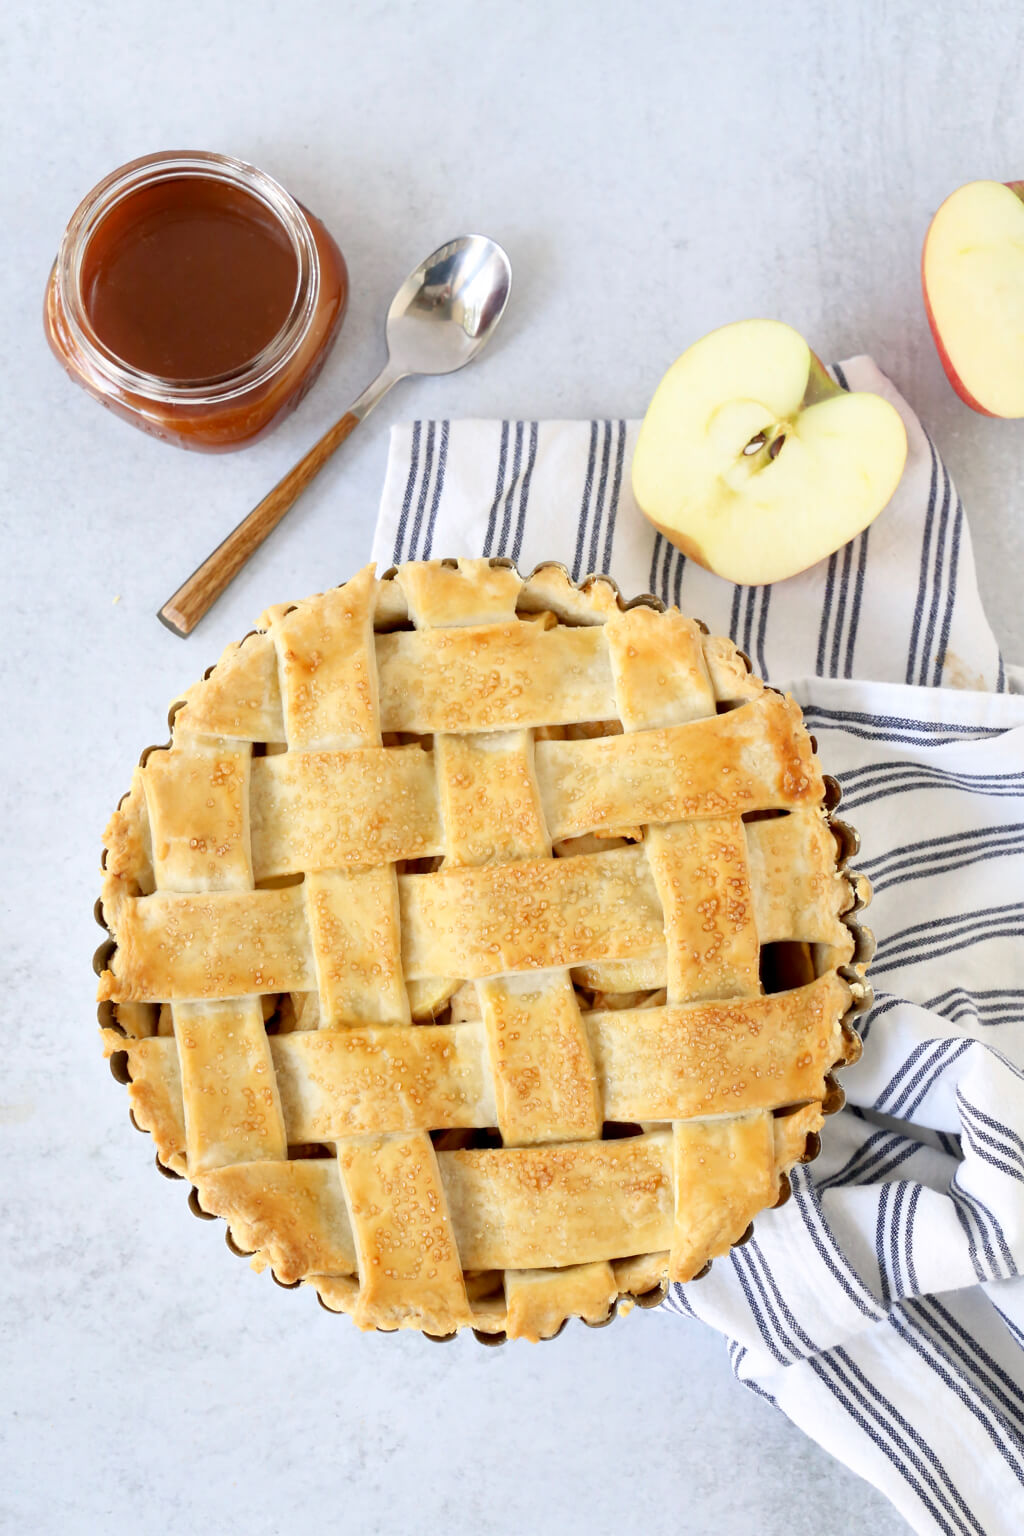 deep dish apple pie with caramel sauce and sliced apples